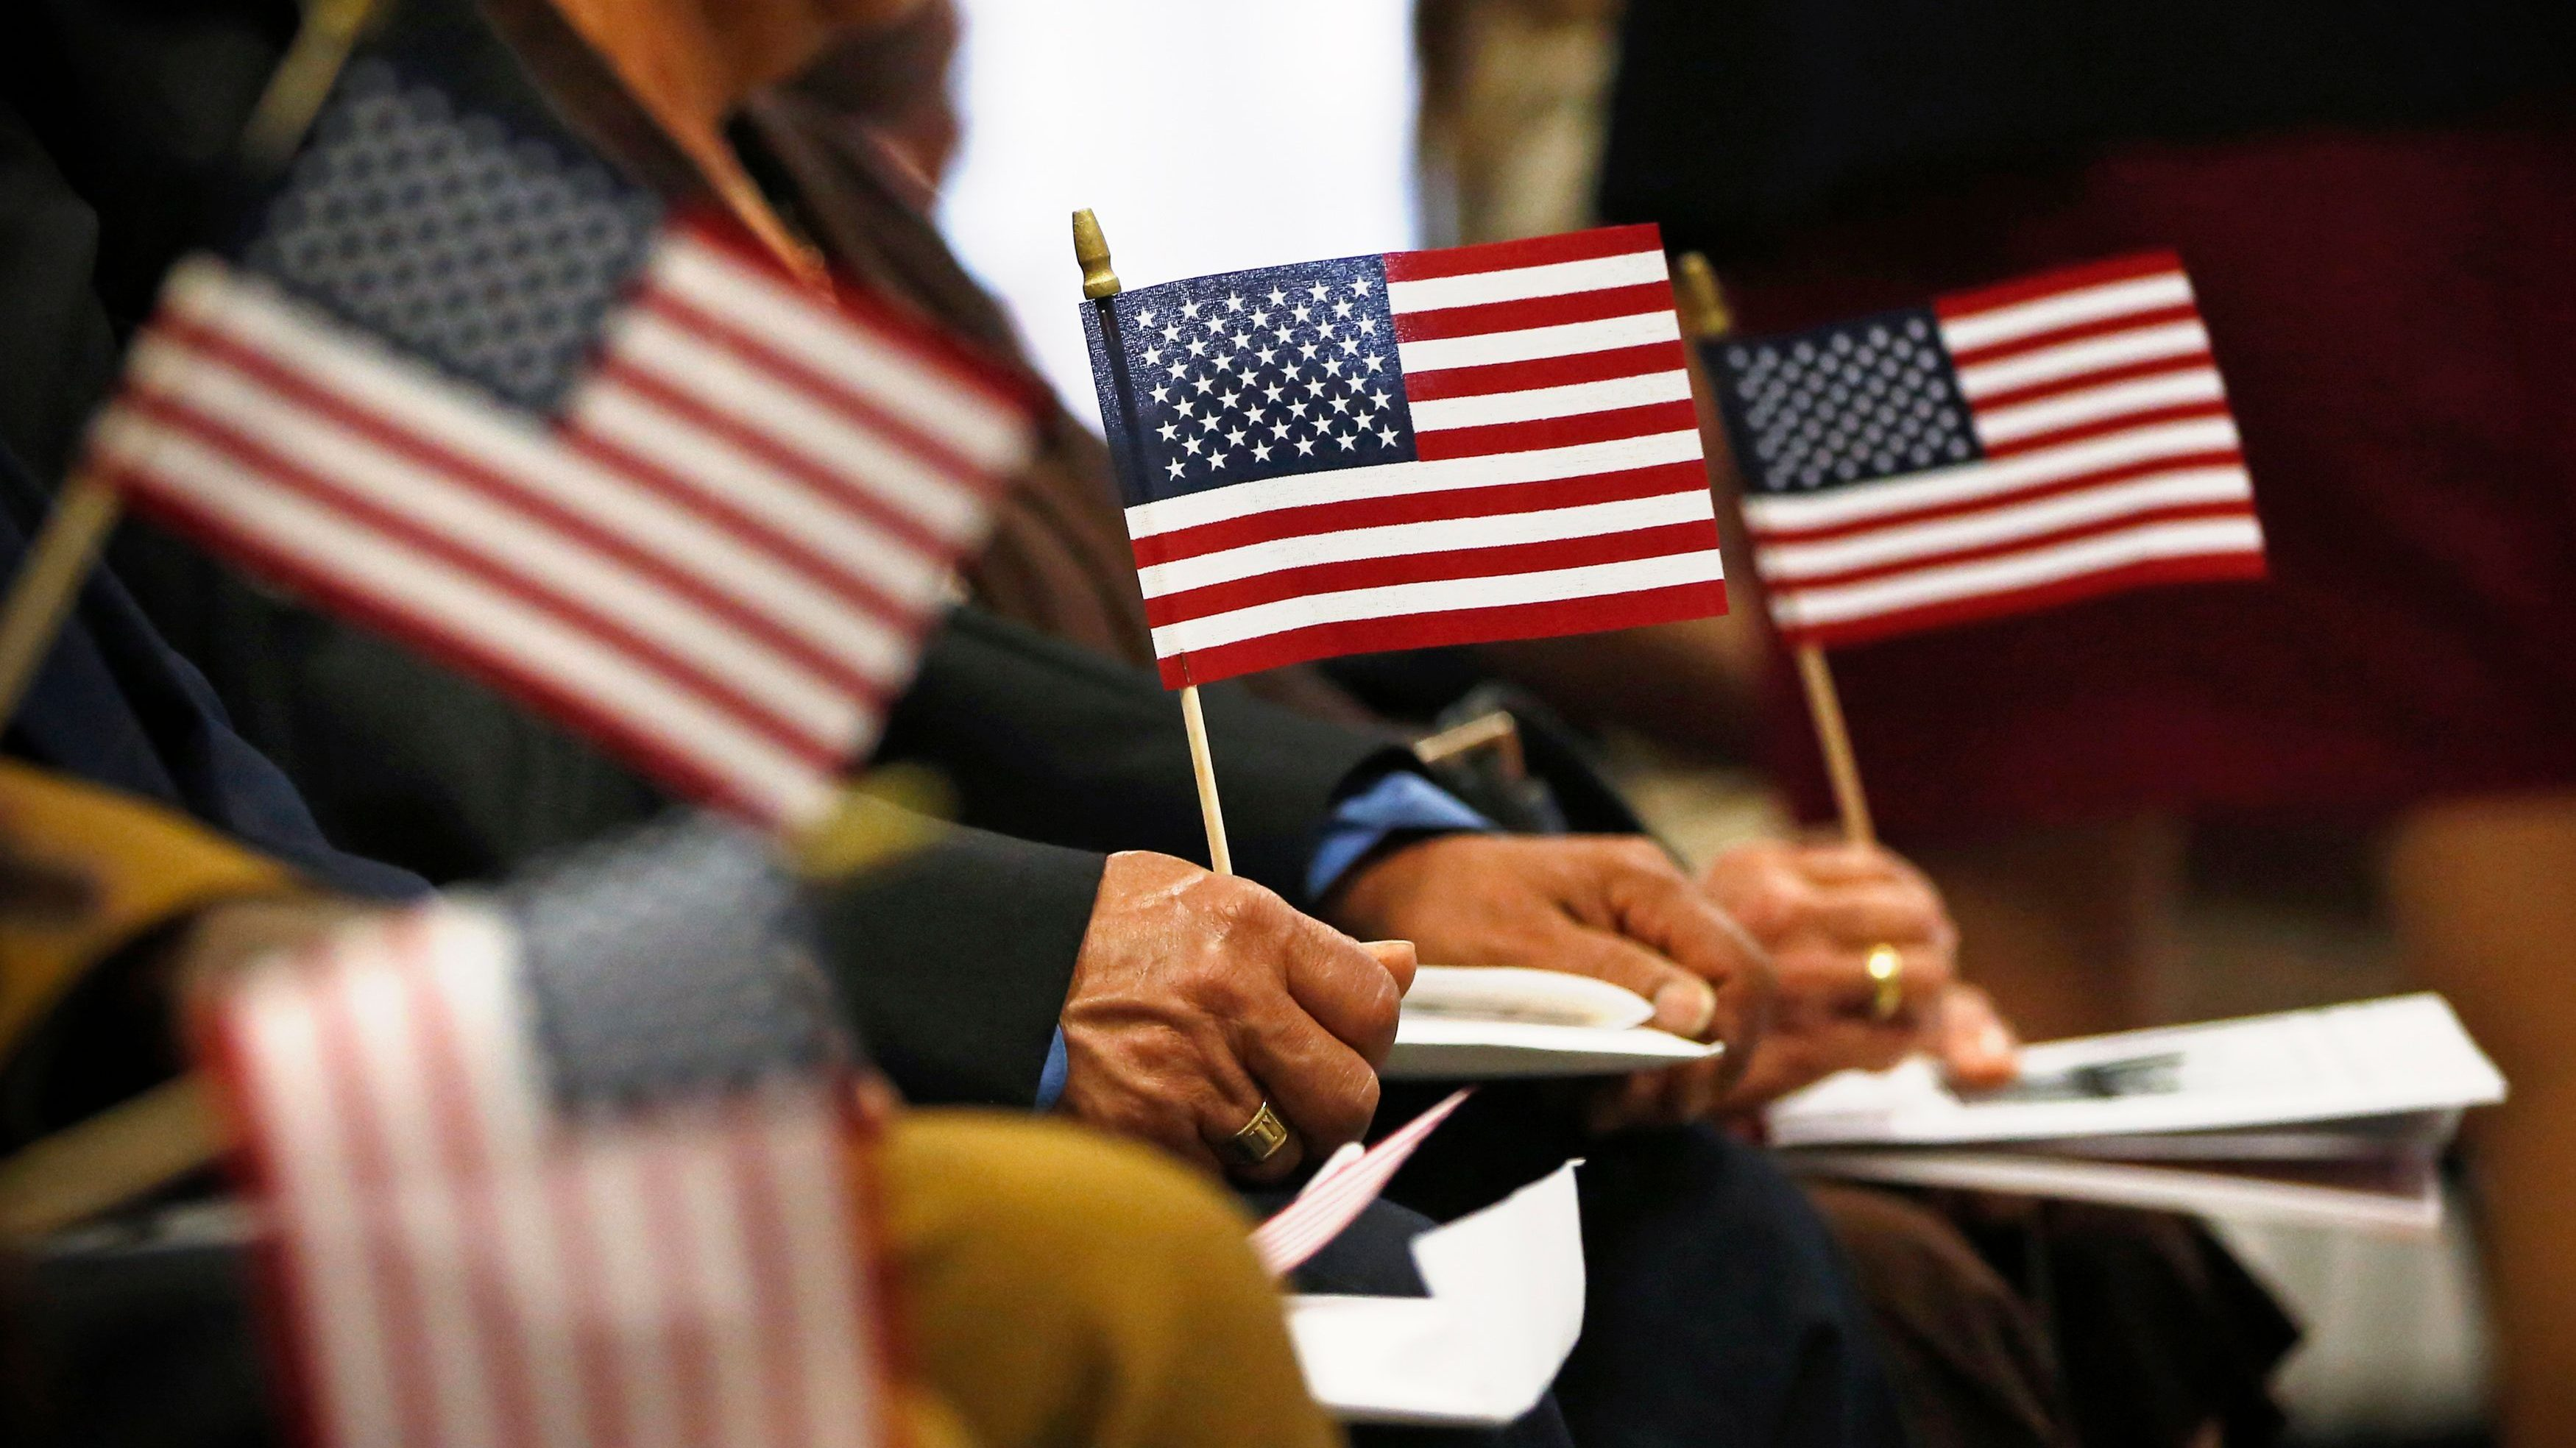 Immigrants hold U.S. flags during naturalization ceremony in New York